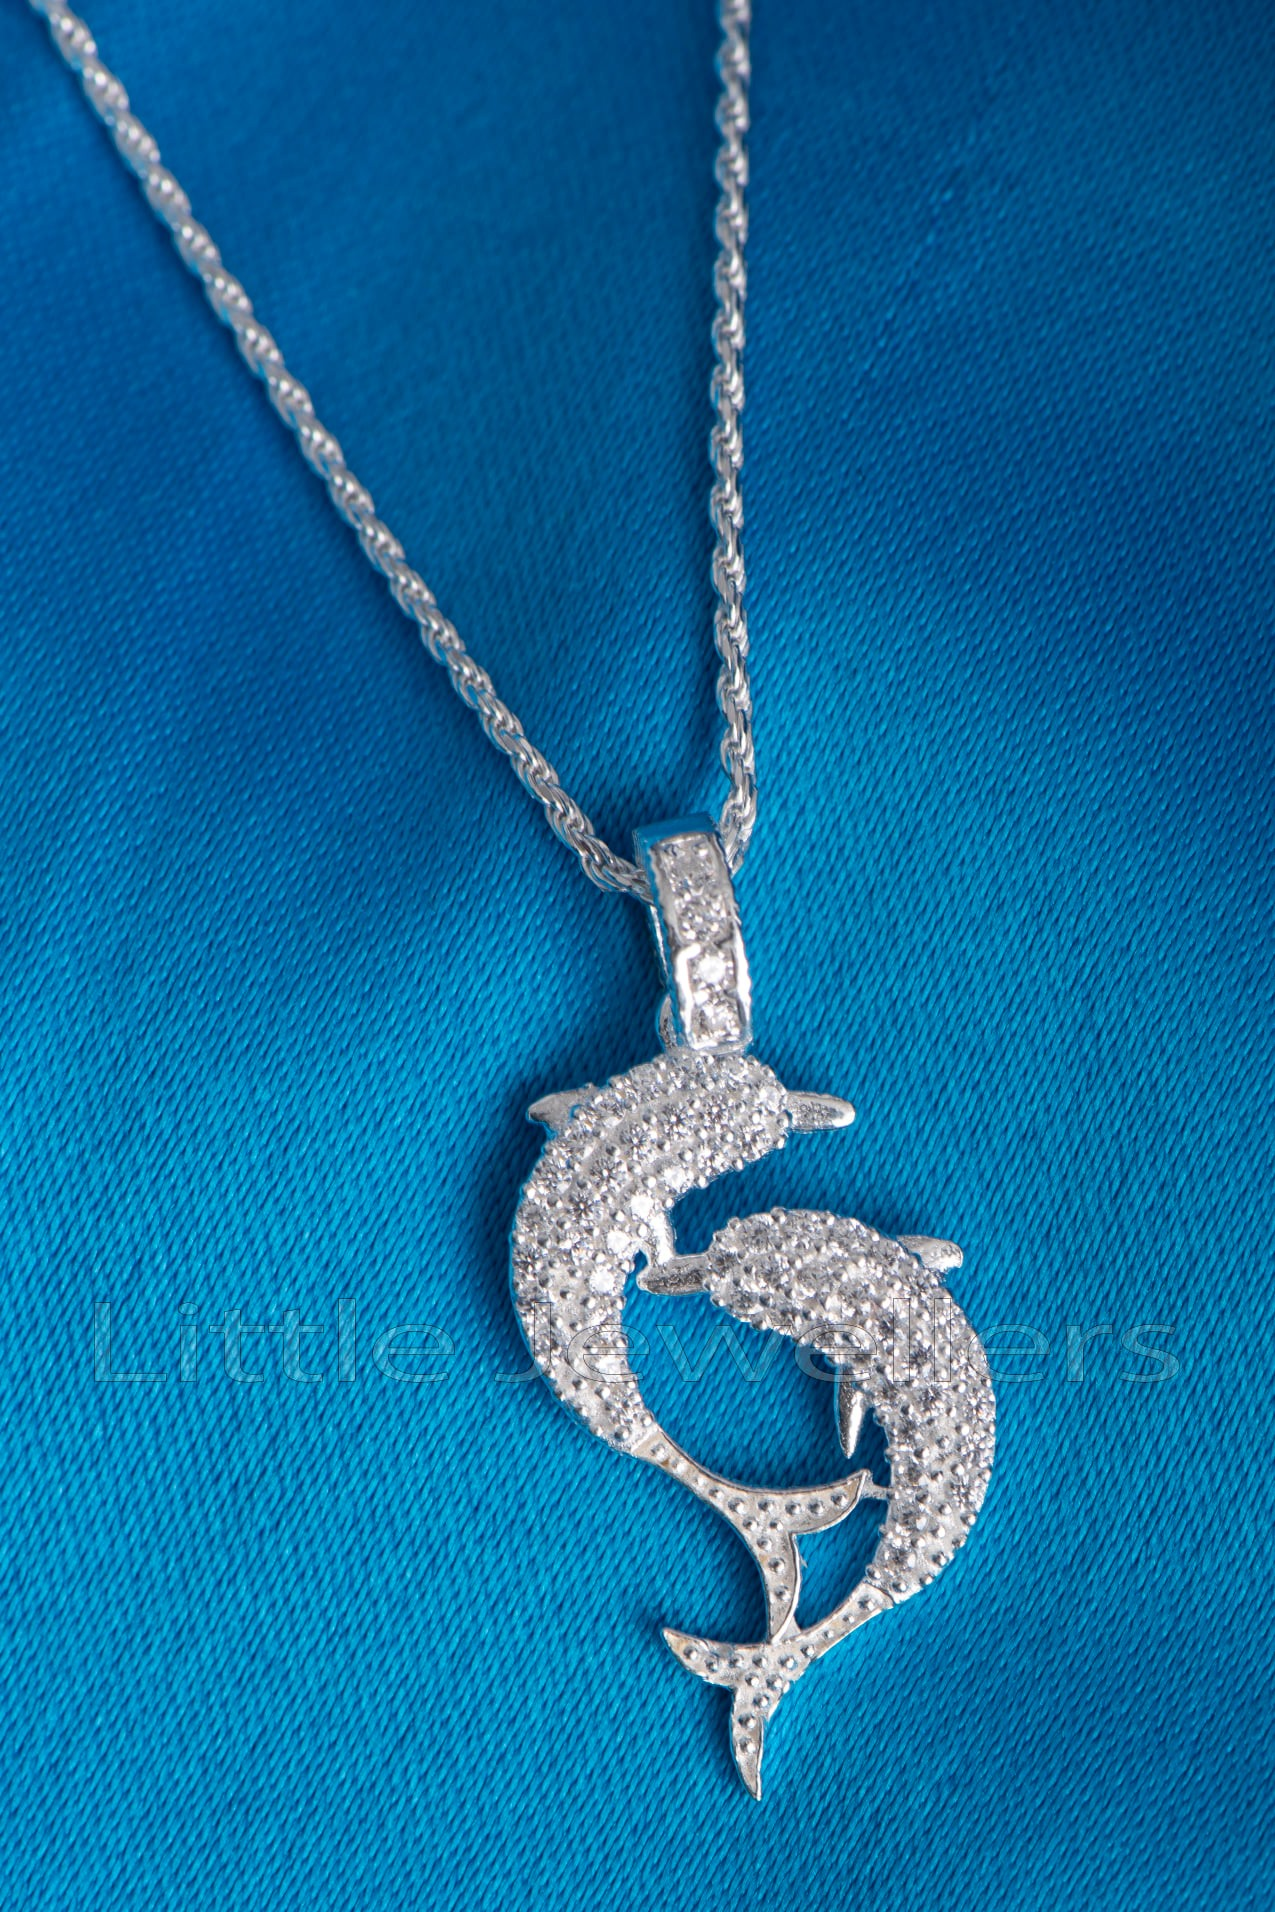 Double Dolphin intricate Pendant